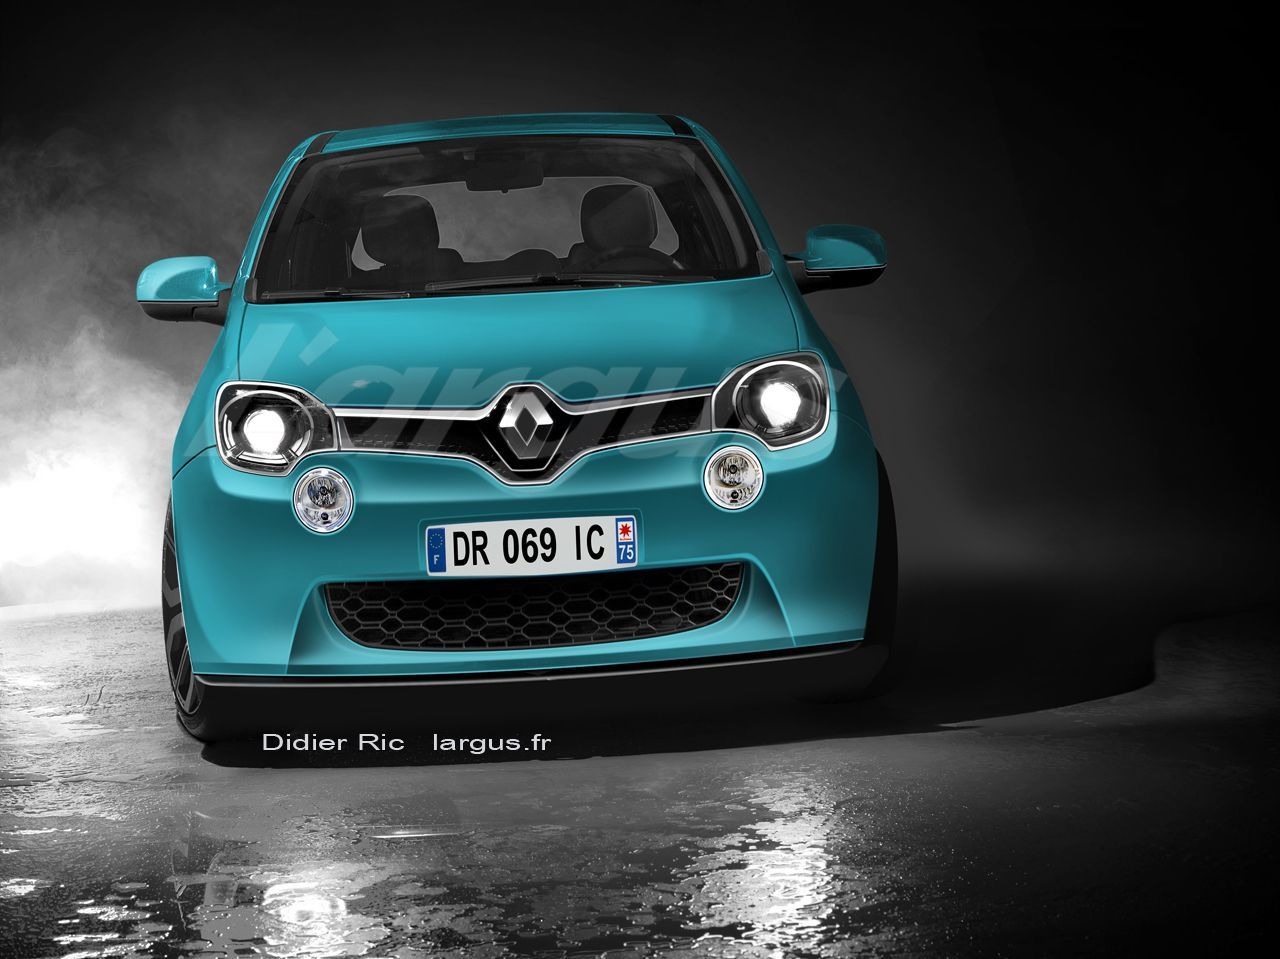 Future Renault Twingo III : photos exclusives de la Twingo de 2014